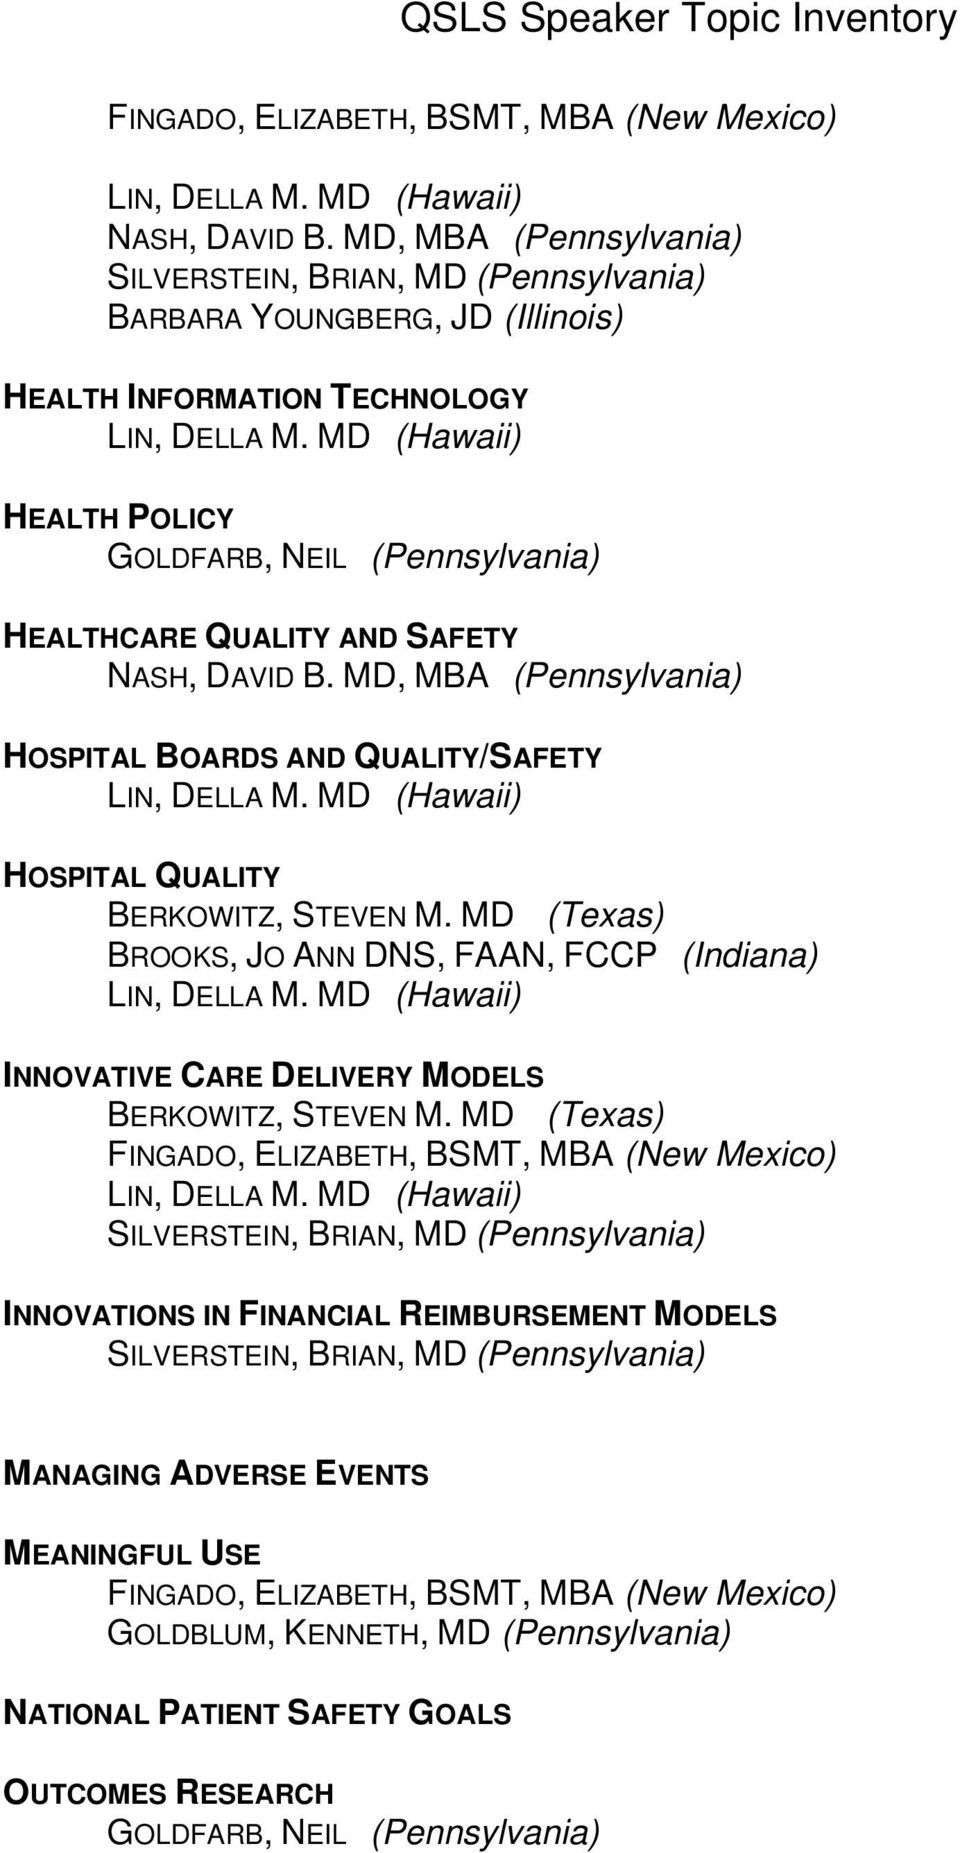 INNOVATIVE CARE DELIVERY MODELS INNOVATIONS IN FINANCIAL REIMBURSEMENT MODELS MANAGING ADVERSE EVENTS